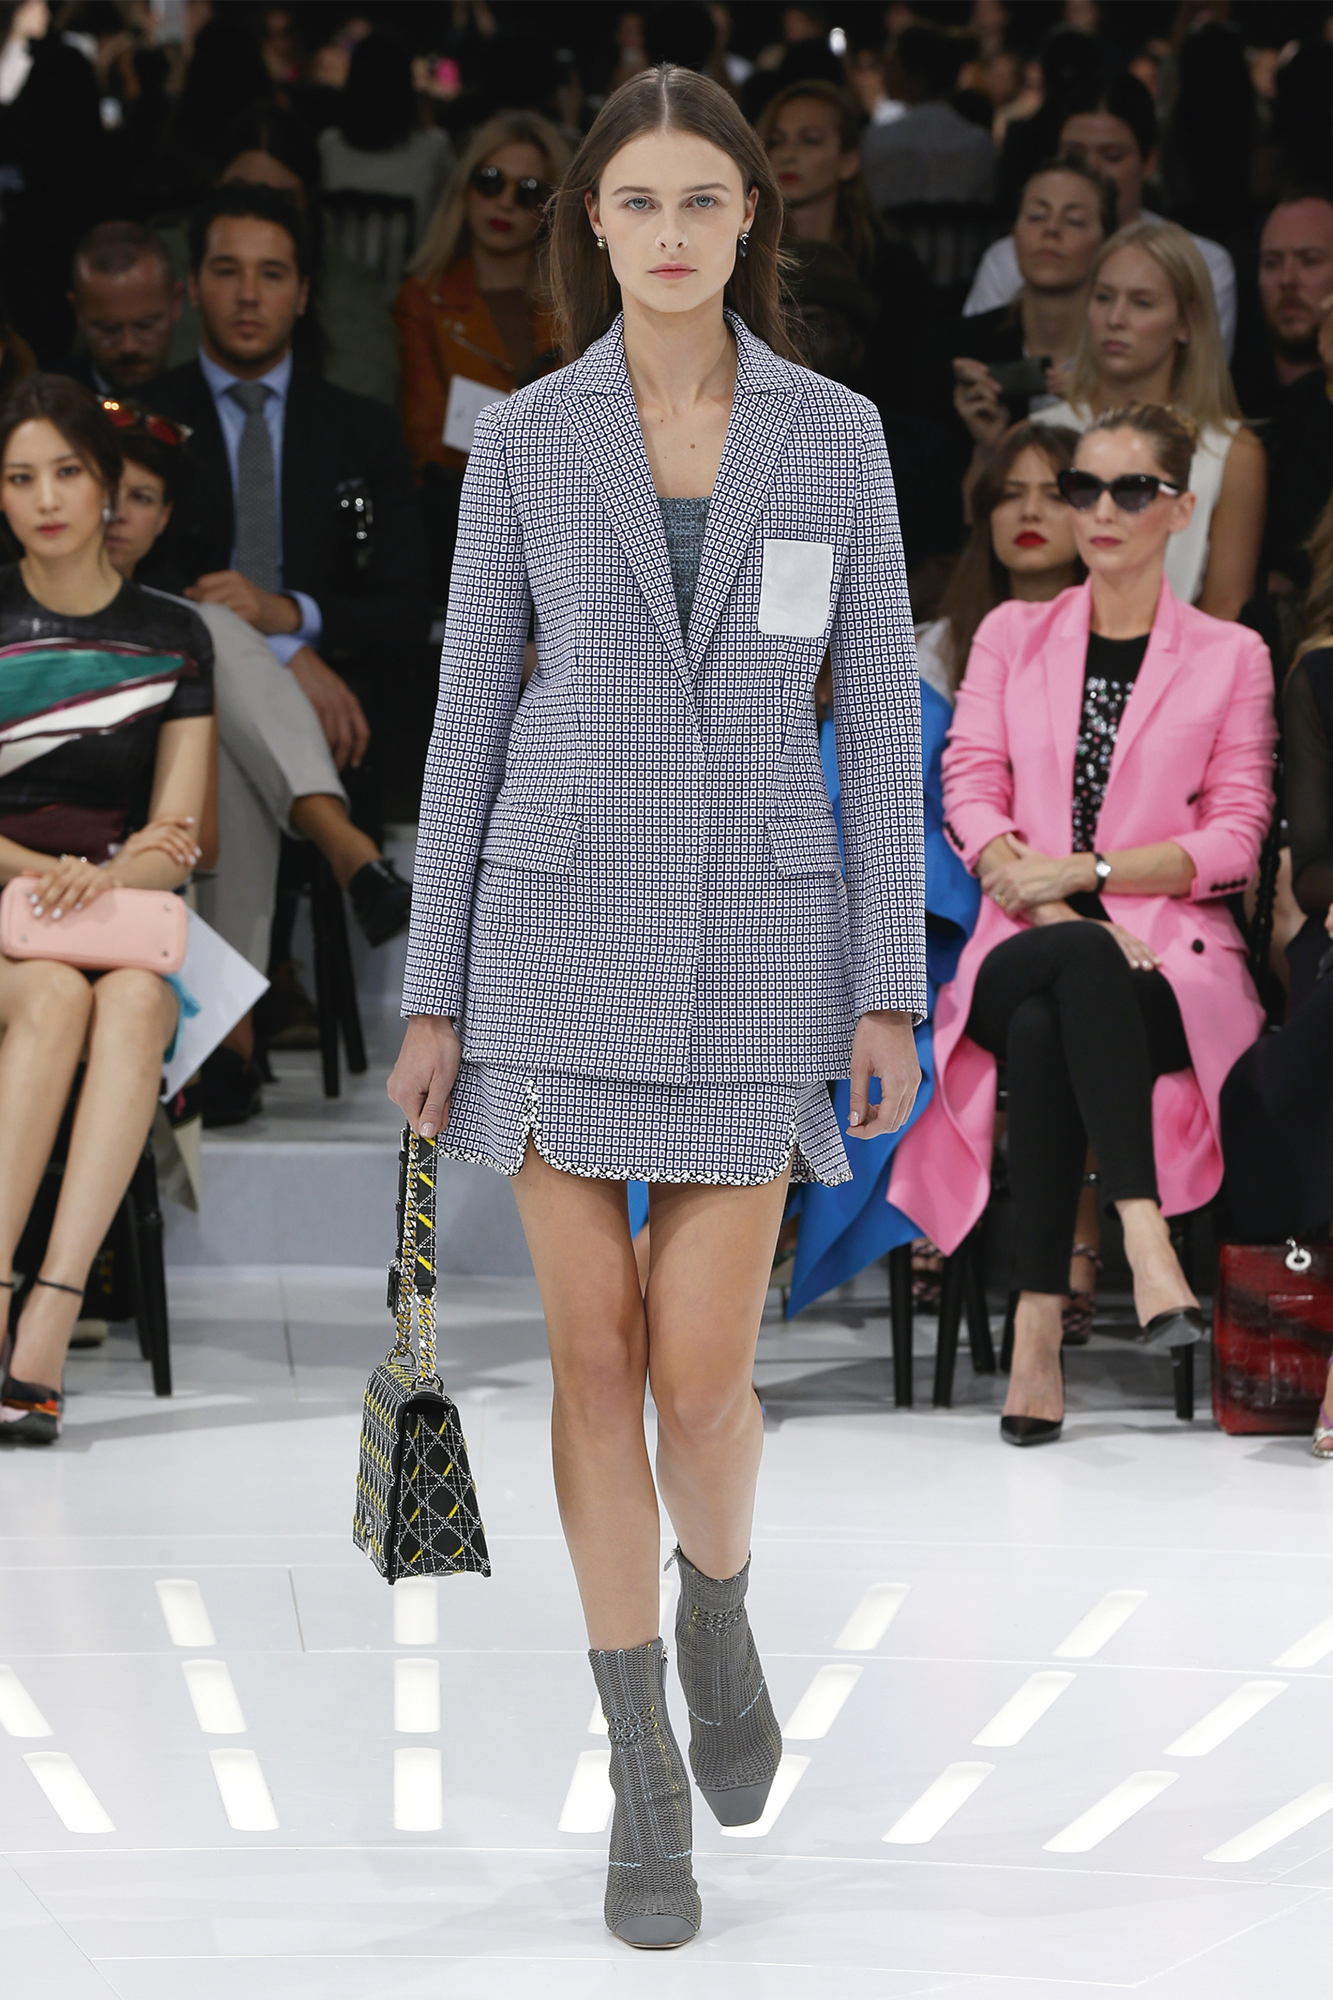 New Western Fashion Christian Dior Ready To Wear Dresses Spring Summer Collection 2015 (24)